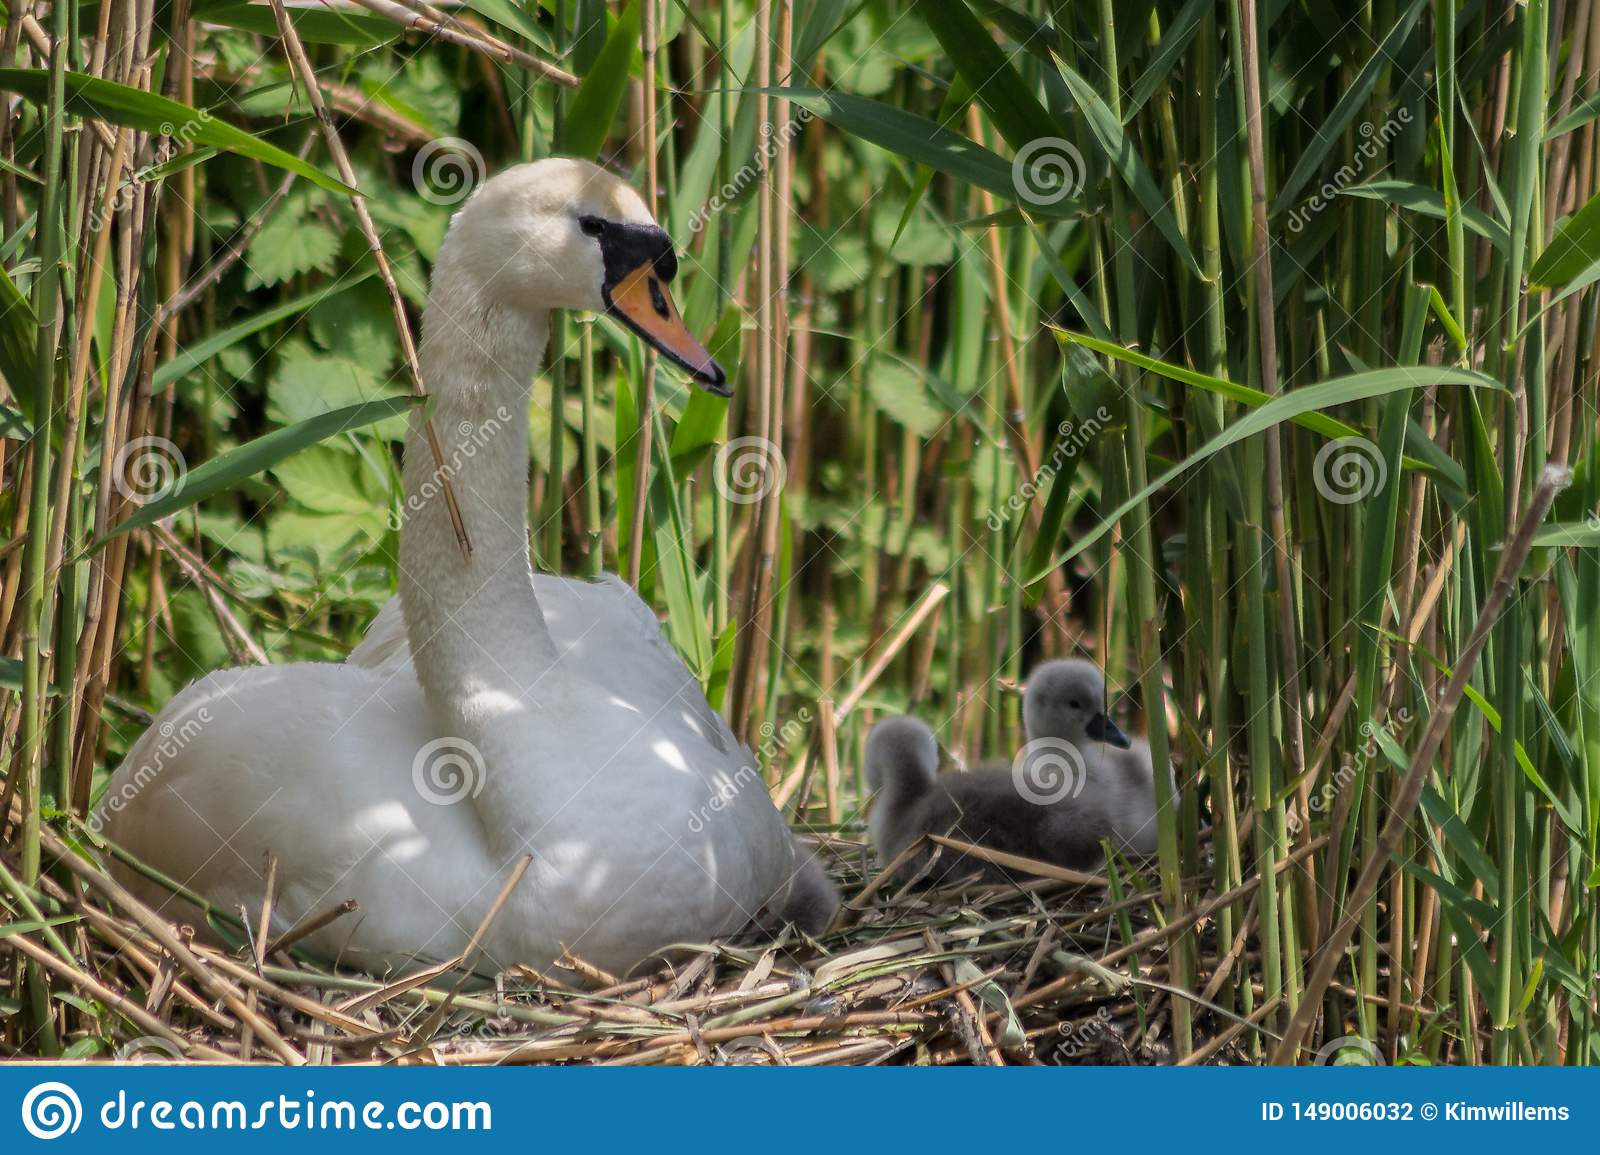 Young parent taking care of the cygnets in the nest